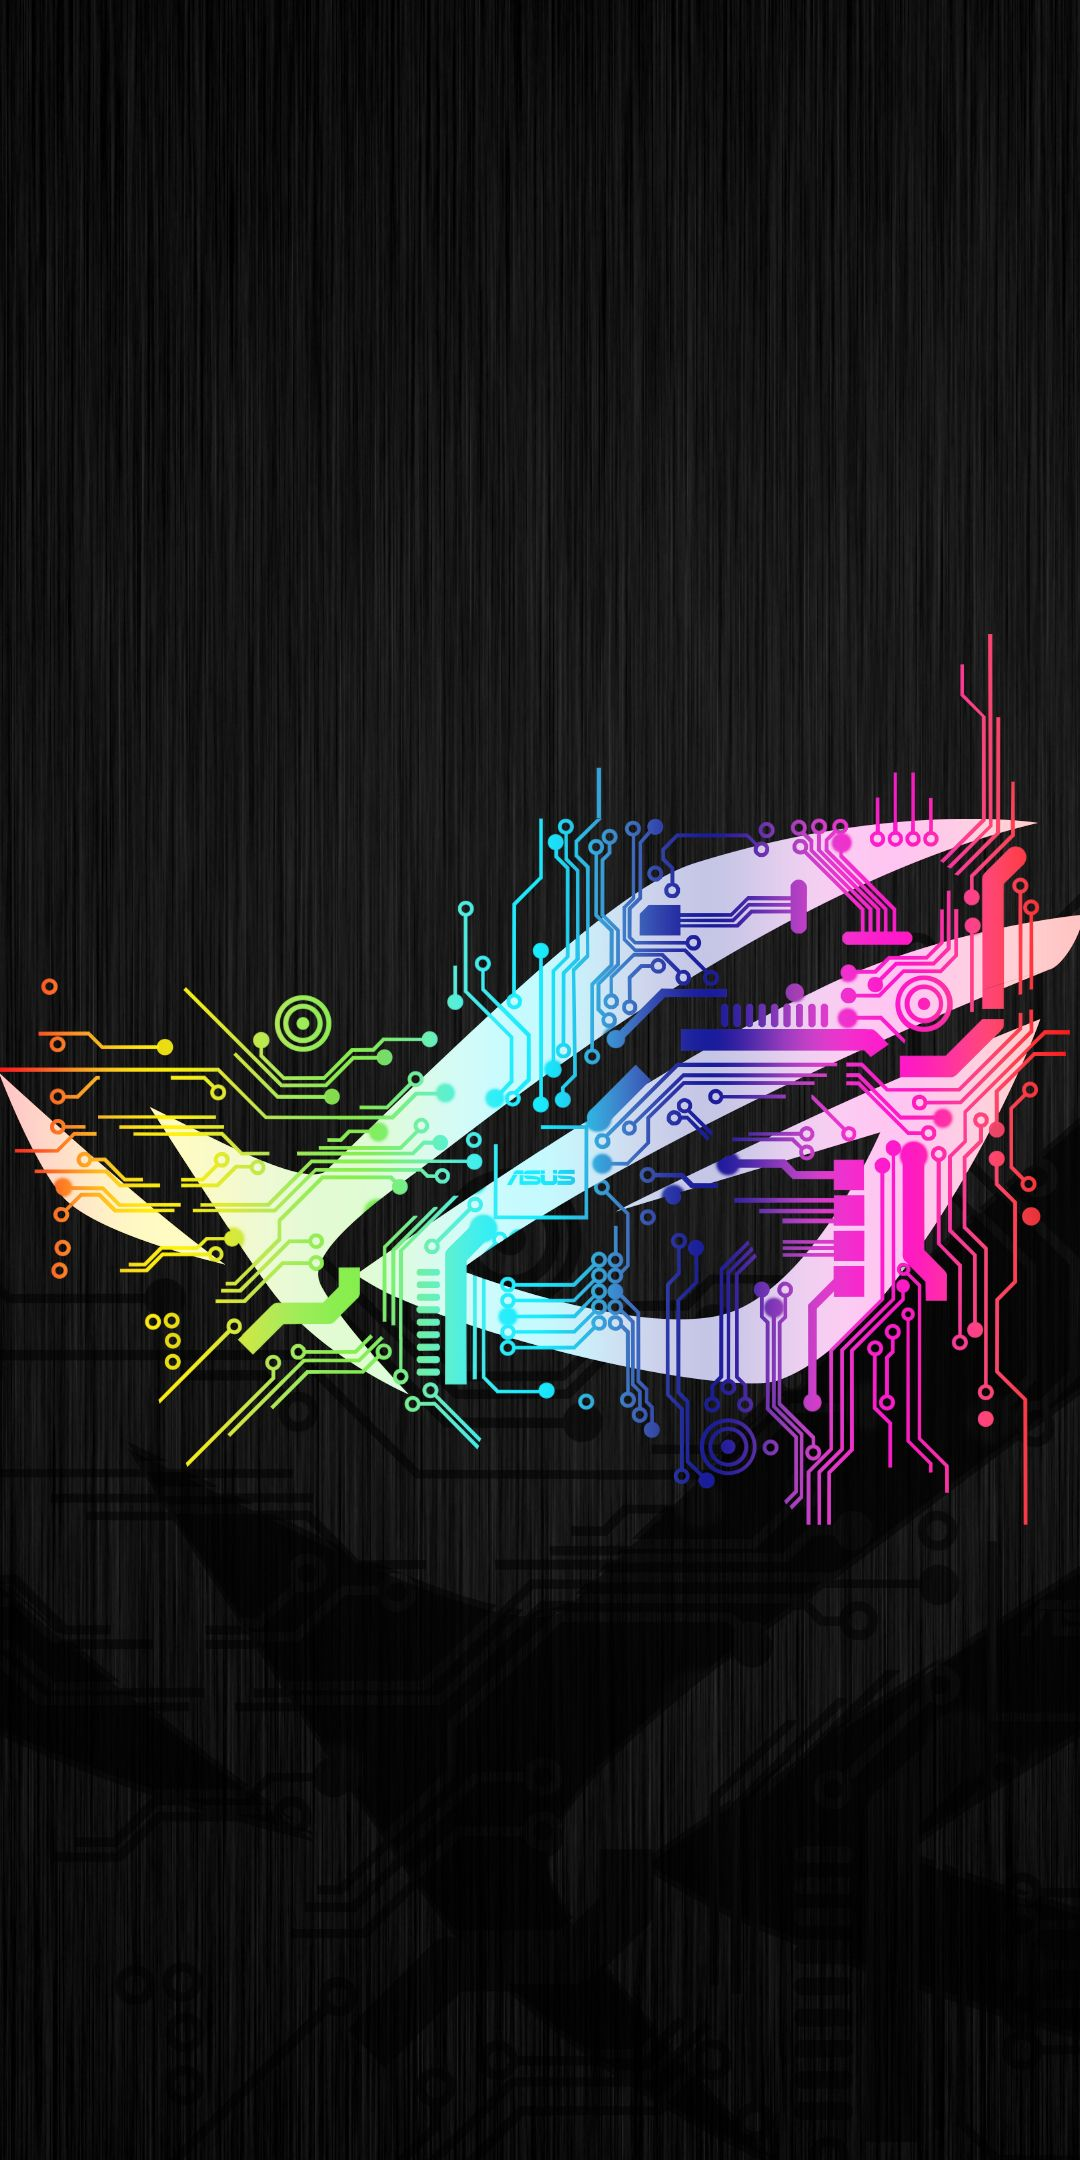 1080x2160 Technology/Asus ROG (1080x2160) Wallpaper ID: 765717 ...